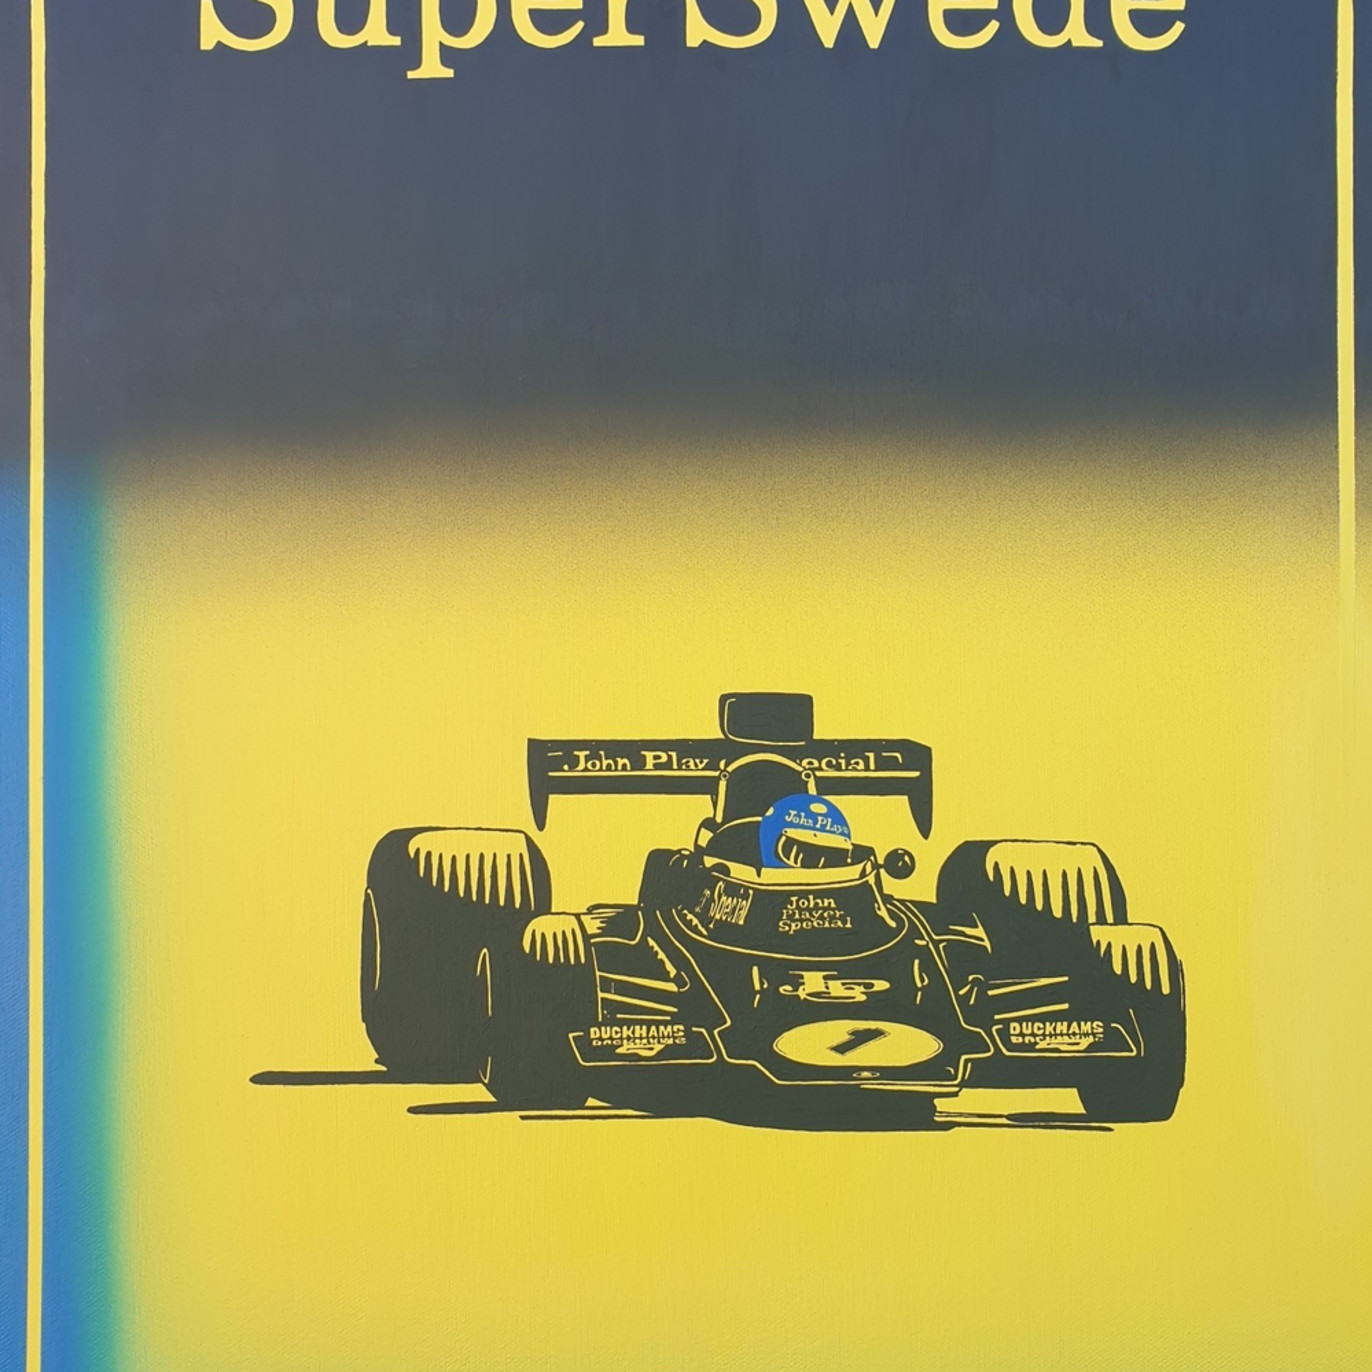 Superswede 1372 x 1718 r5fqt5